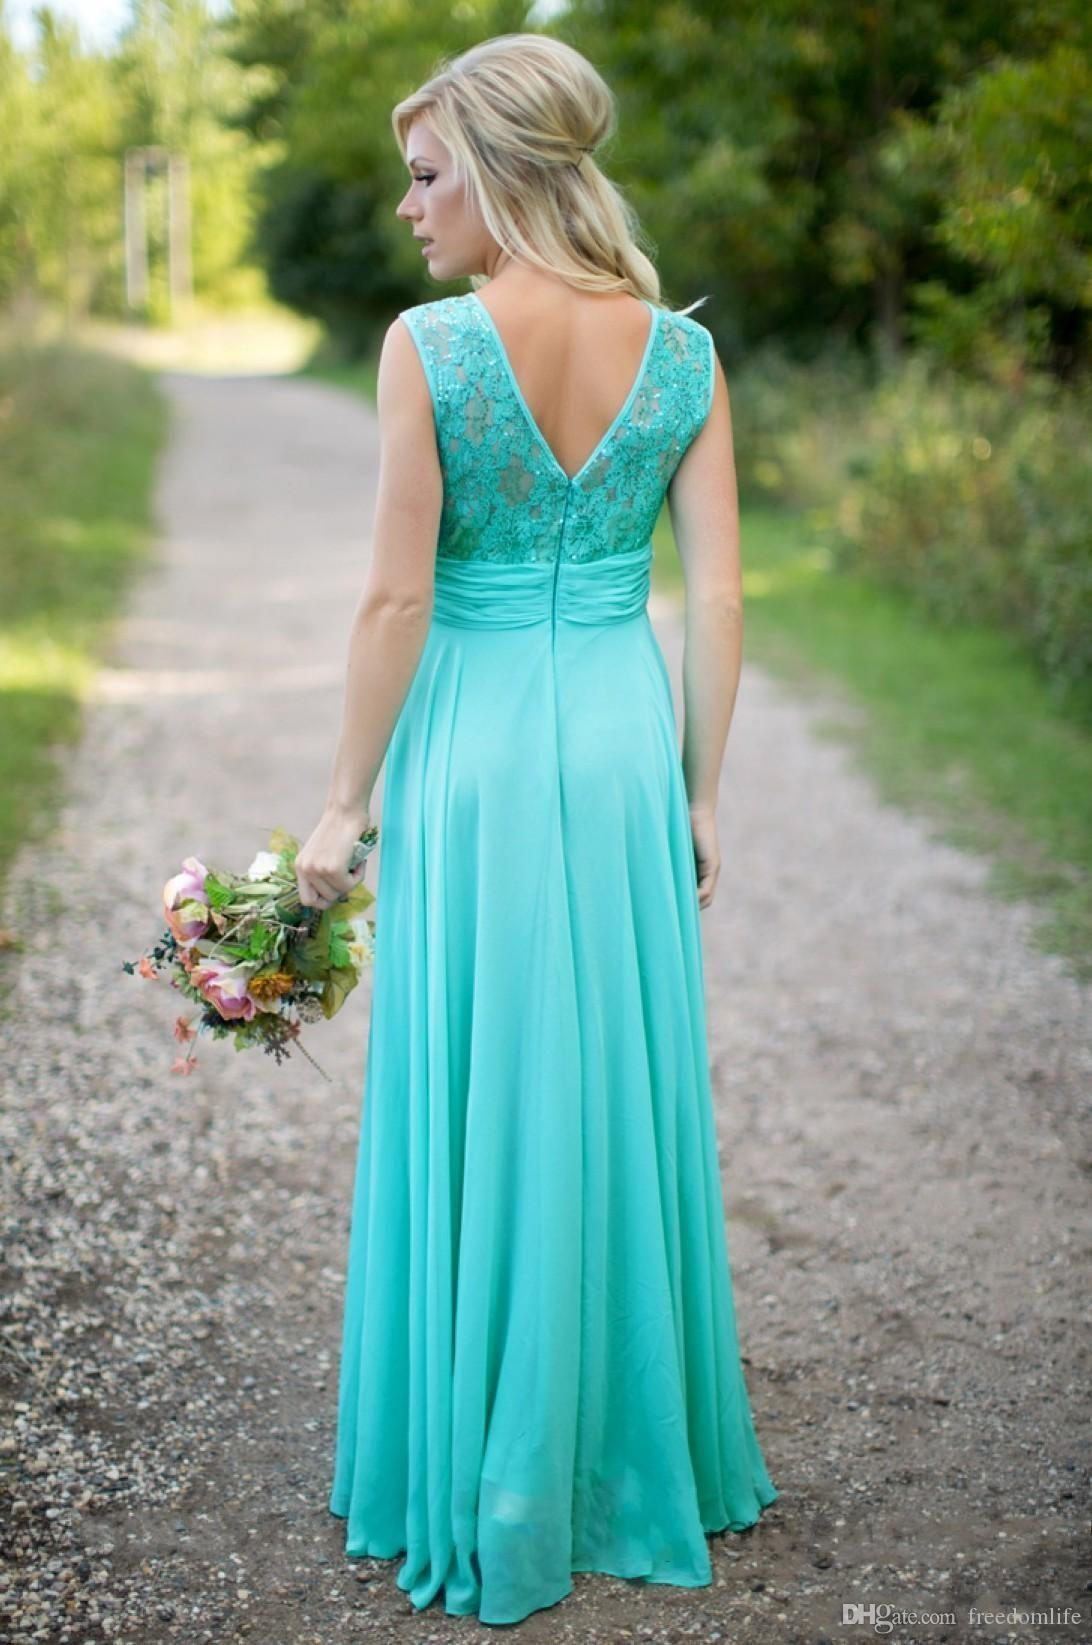 2017 Turquoise Bridesmaid Dresses Scoop Neckline Chiffon Floor Length Lace V Back Long Maid of Honor Dress for Wedding Guest Wear